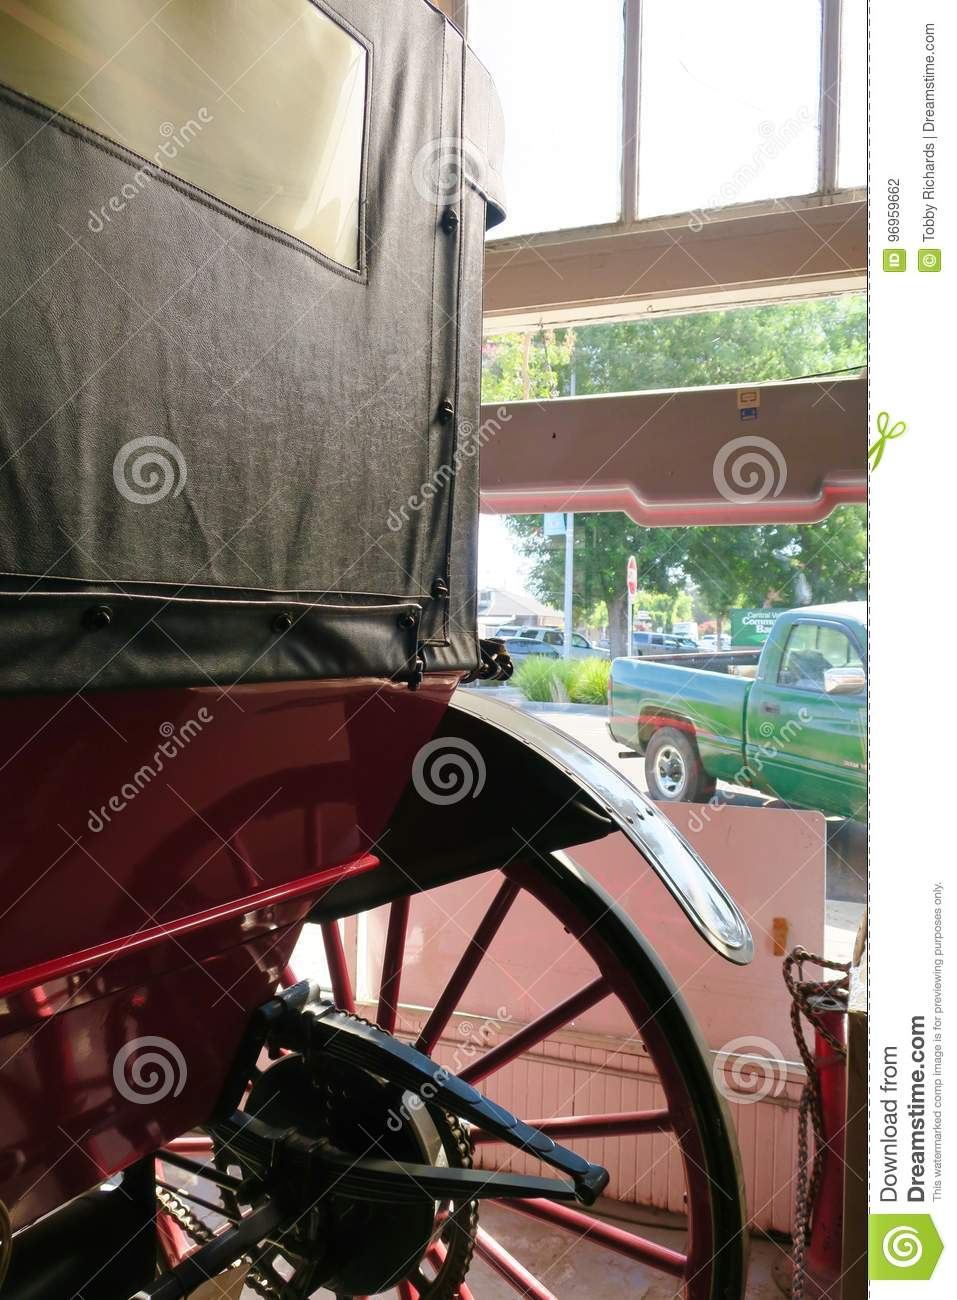 Horseless Carriage stock photo  Image of green, united